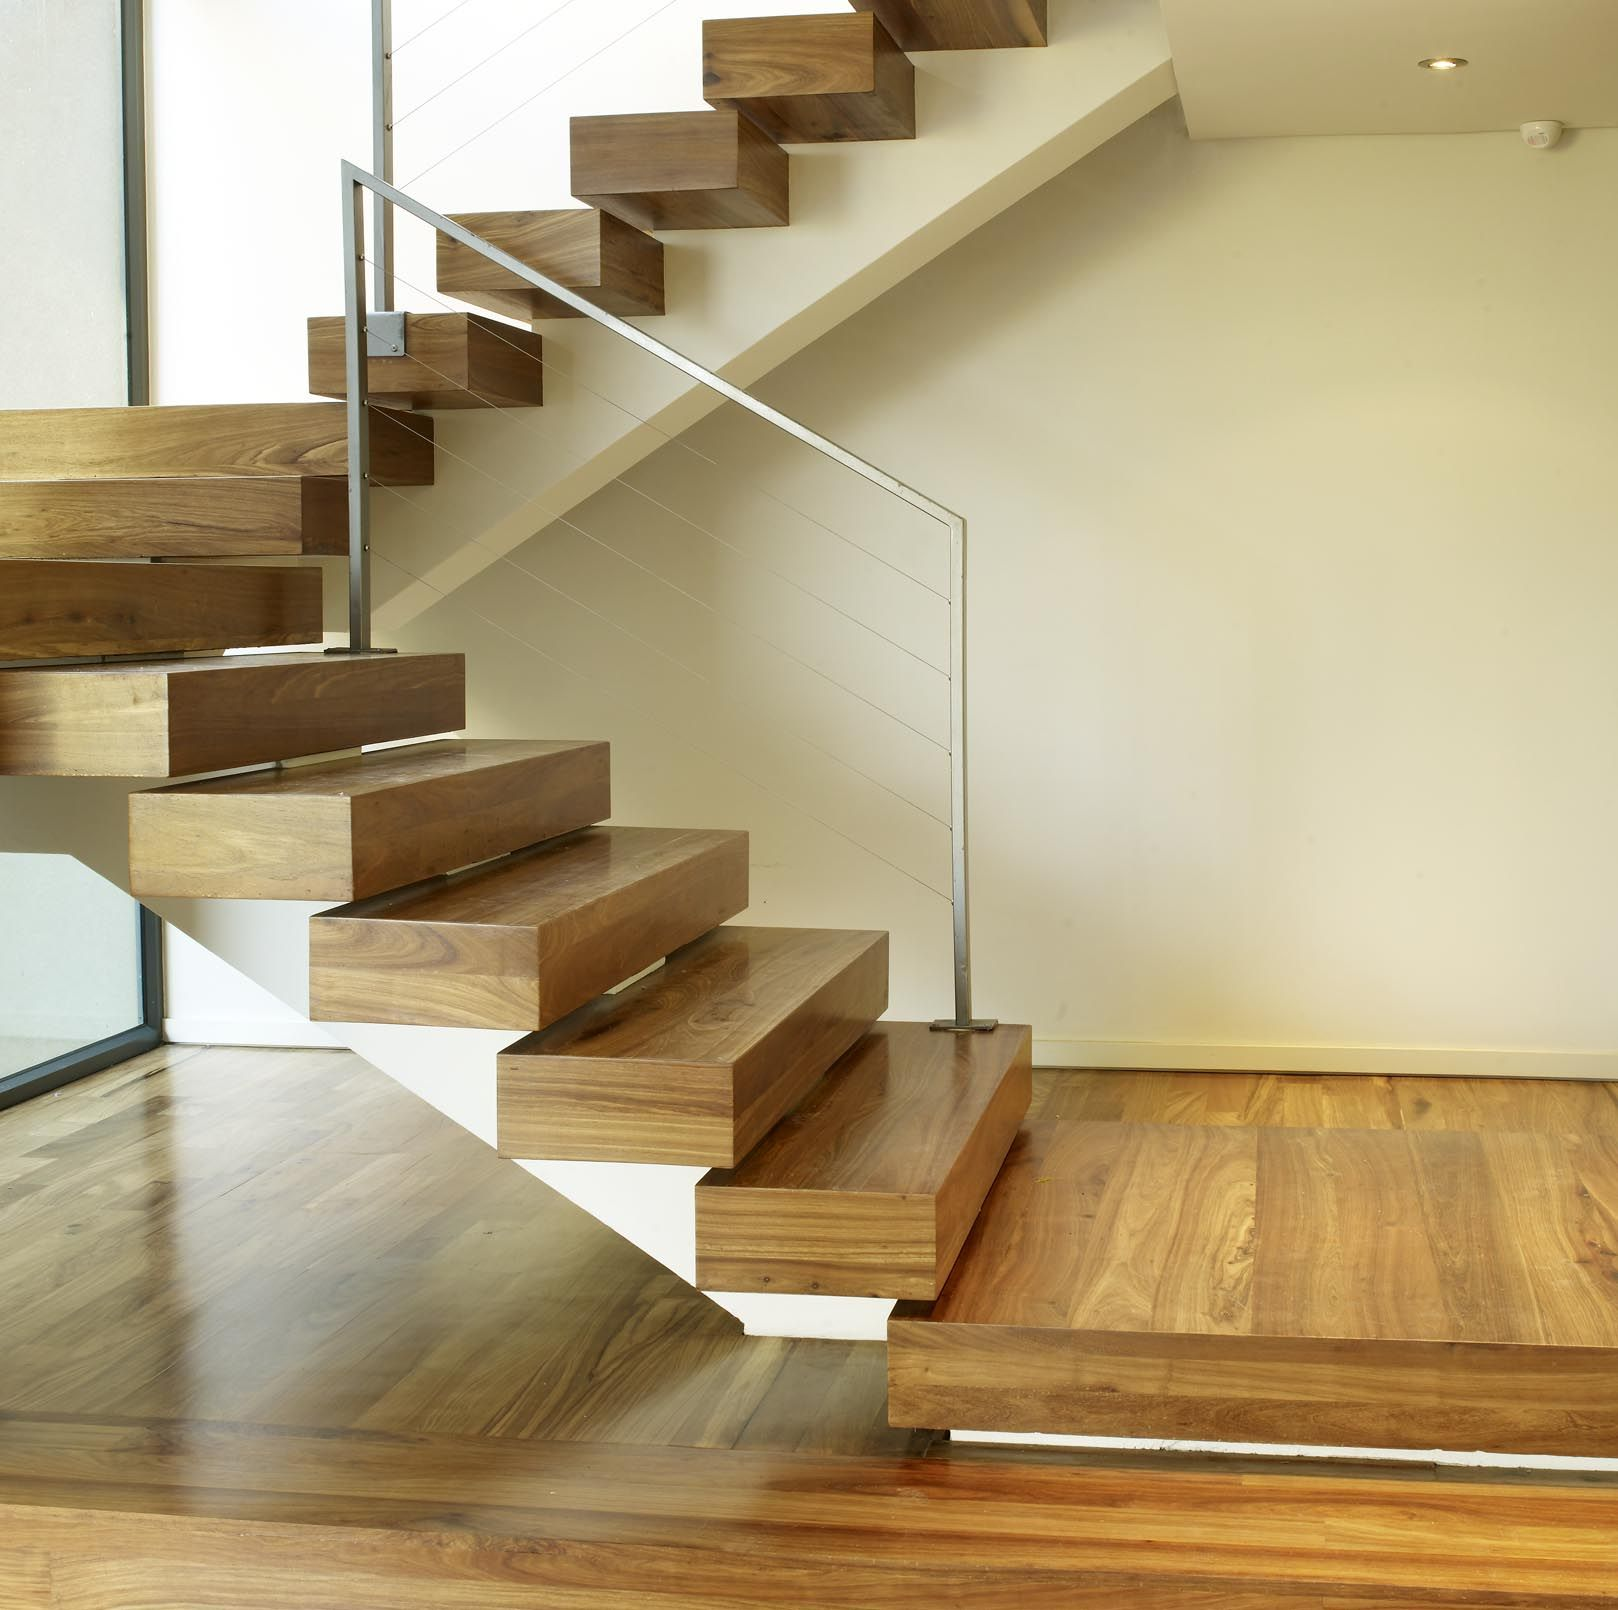 Flooring Ideas For Stairs Trendy Oak Wooden Step Foot Ladder With Iron Handrail As